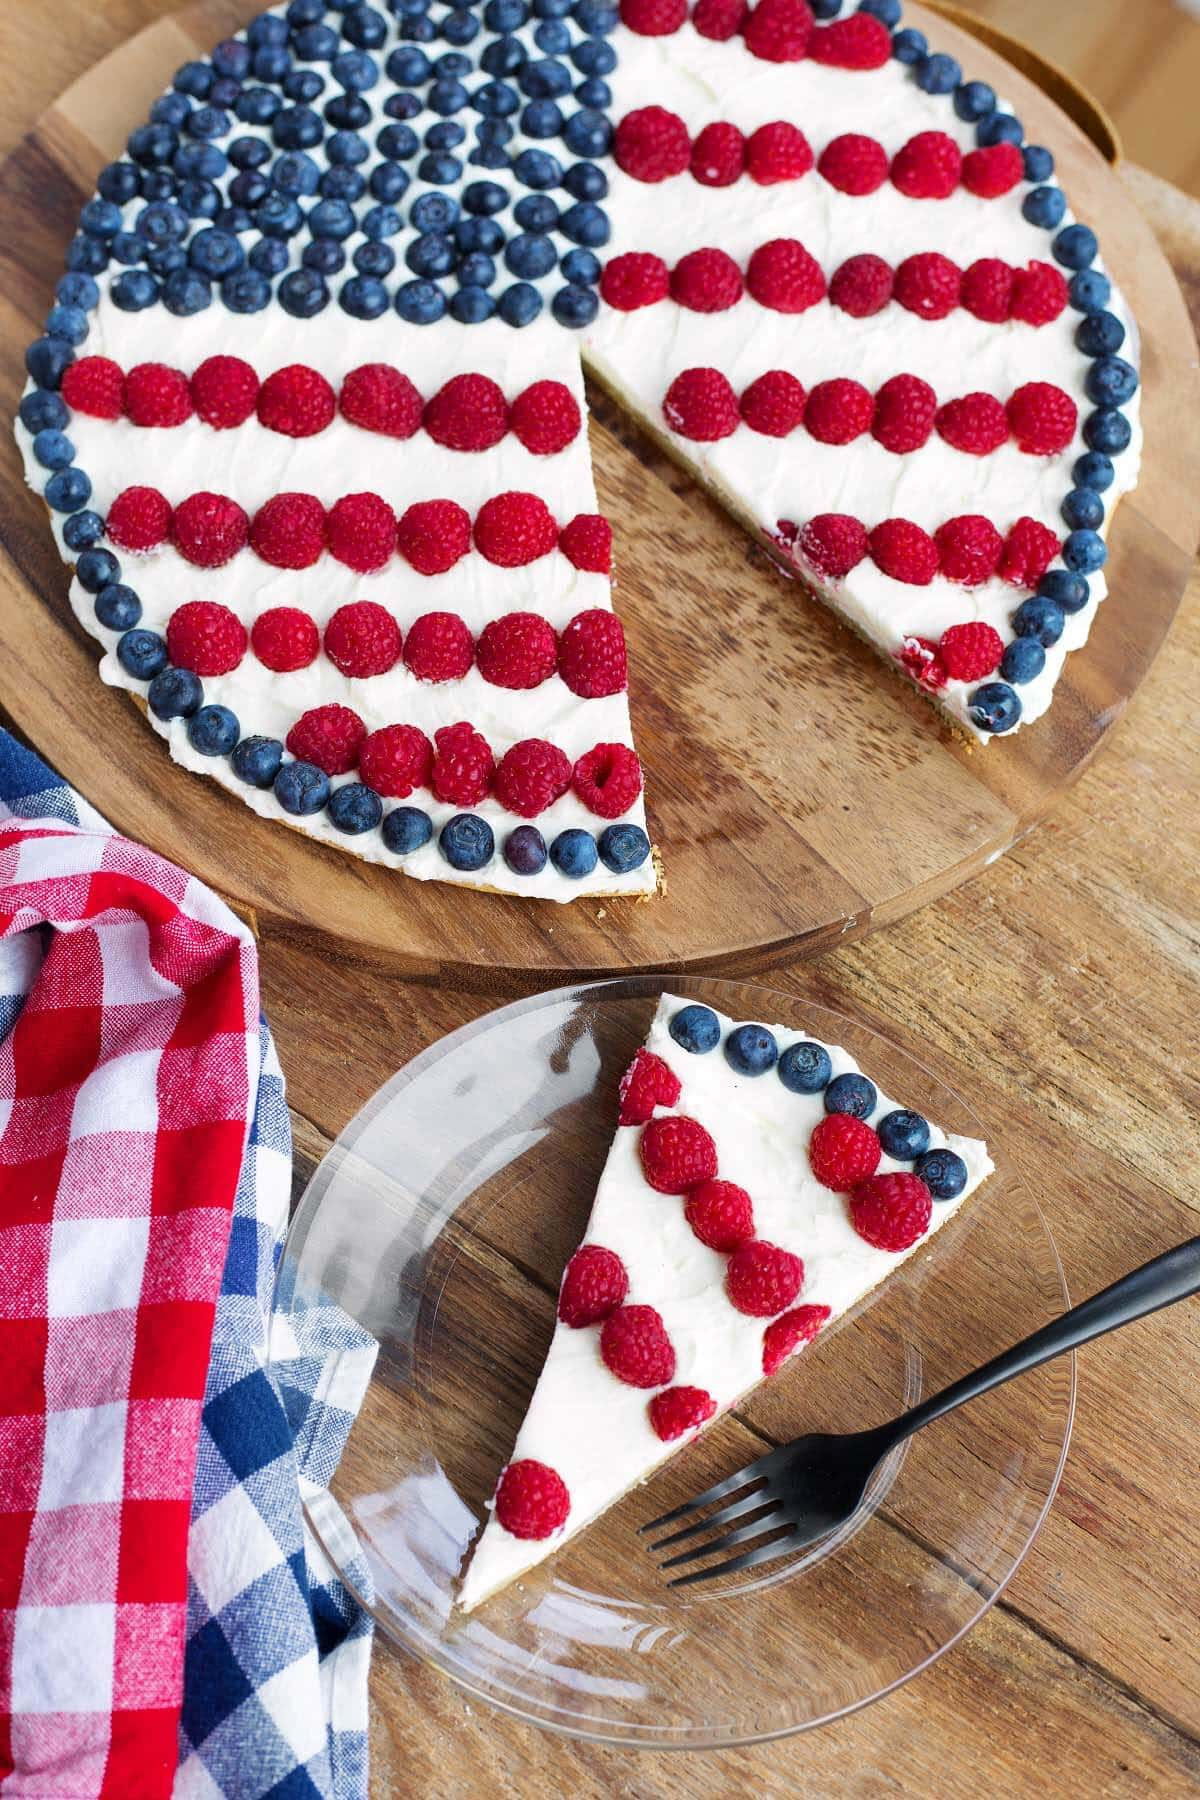 Patriotic Fruit Pizza with frosting, blueberries and raspberries on a wood background with a slice on a glass plate